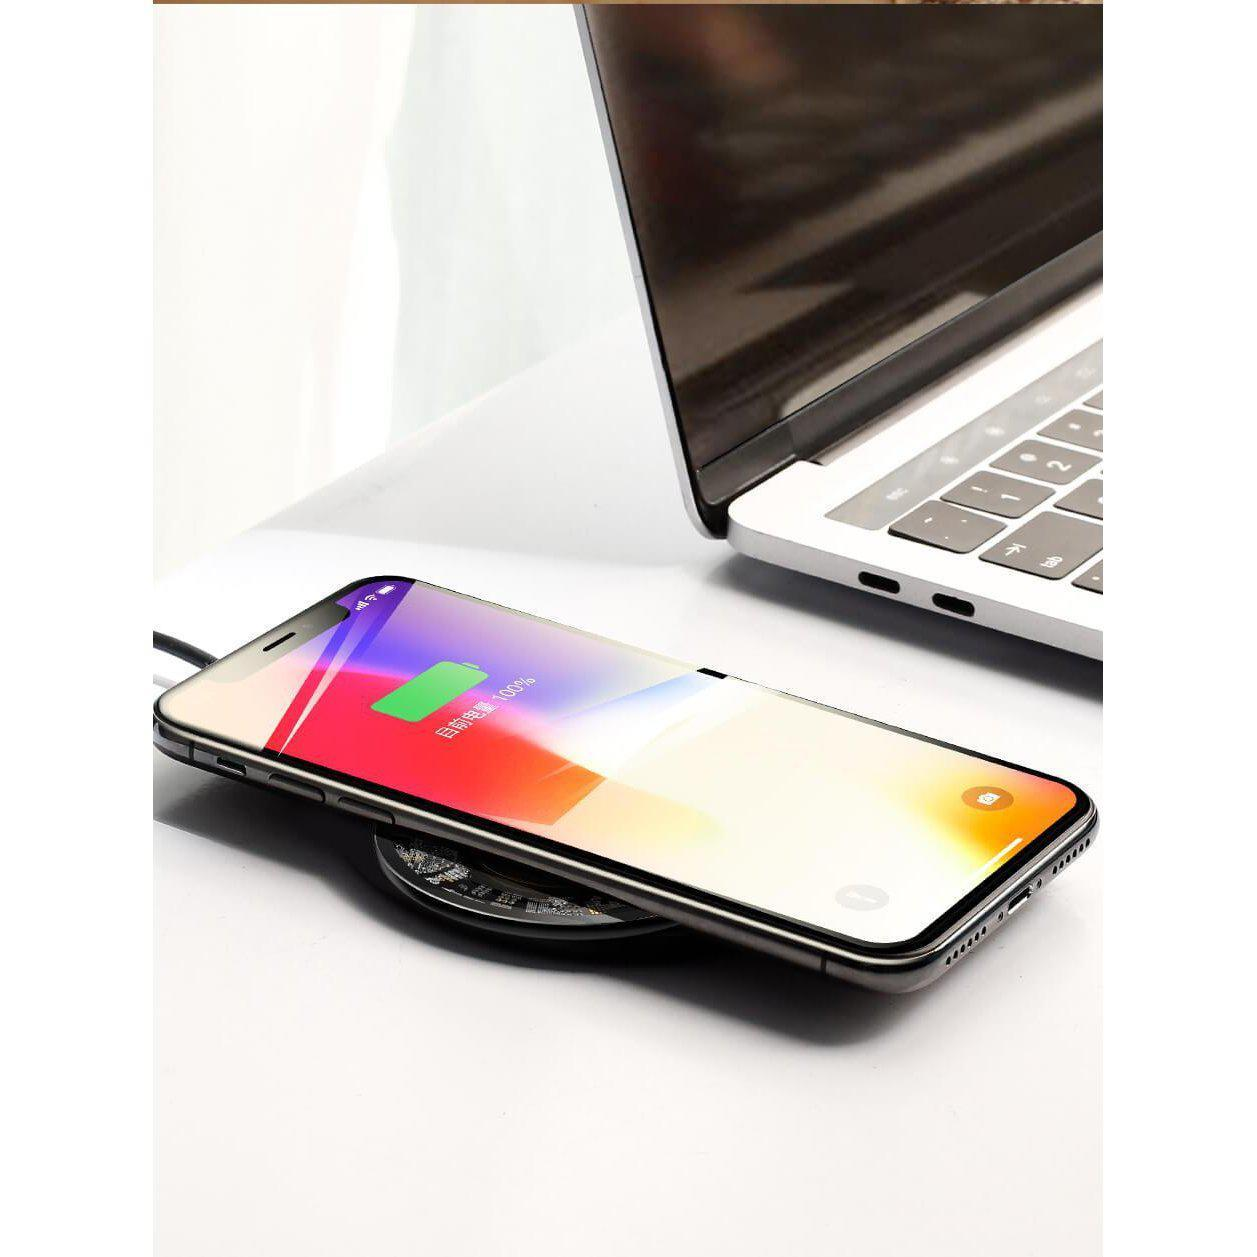 Waterproof Wireless Charging Pad Waterproof Wireless Charging Pad - Shopptique